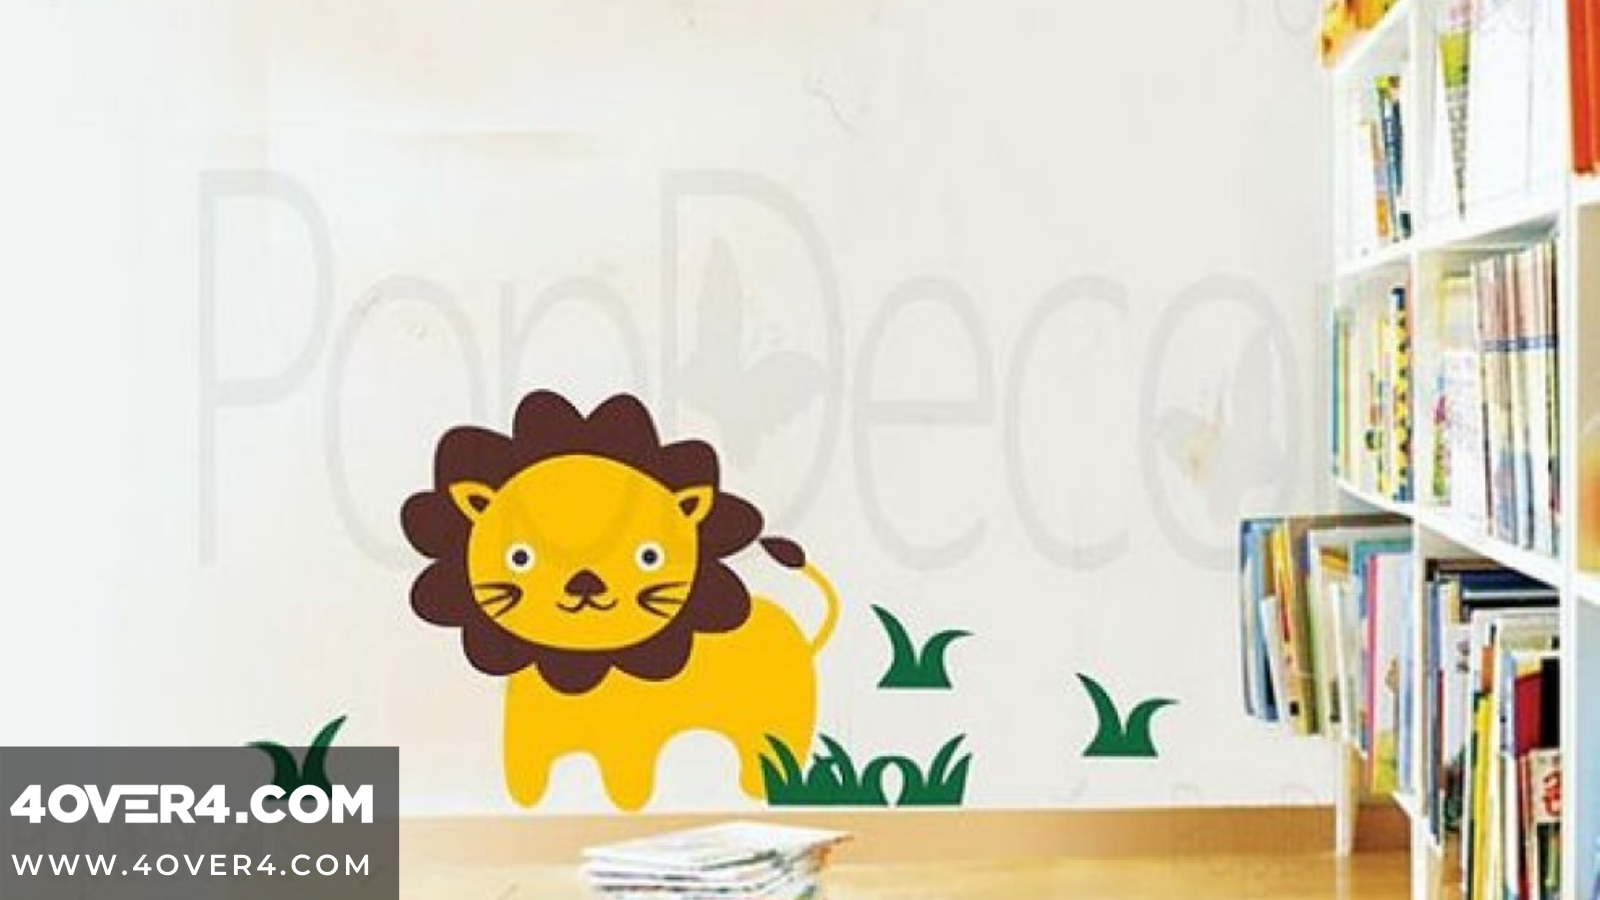 6 Interesting Playroom and Vinyl Stickers For Schools - Adhesive Vinyl Stickers